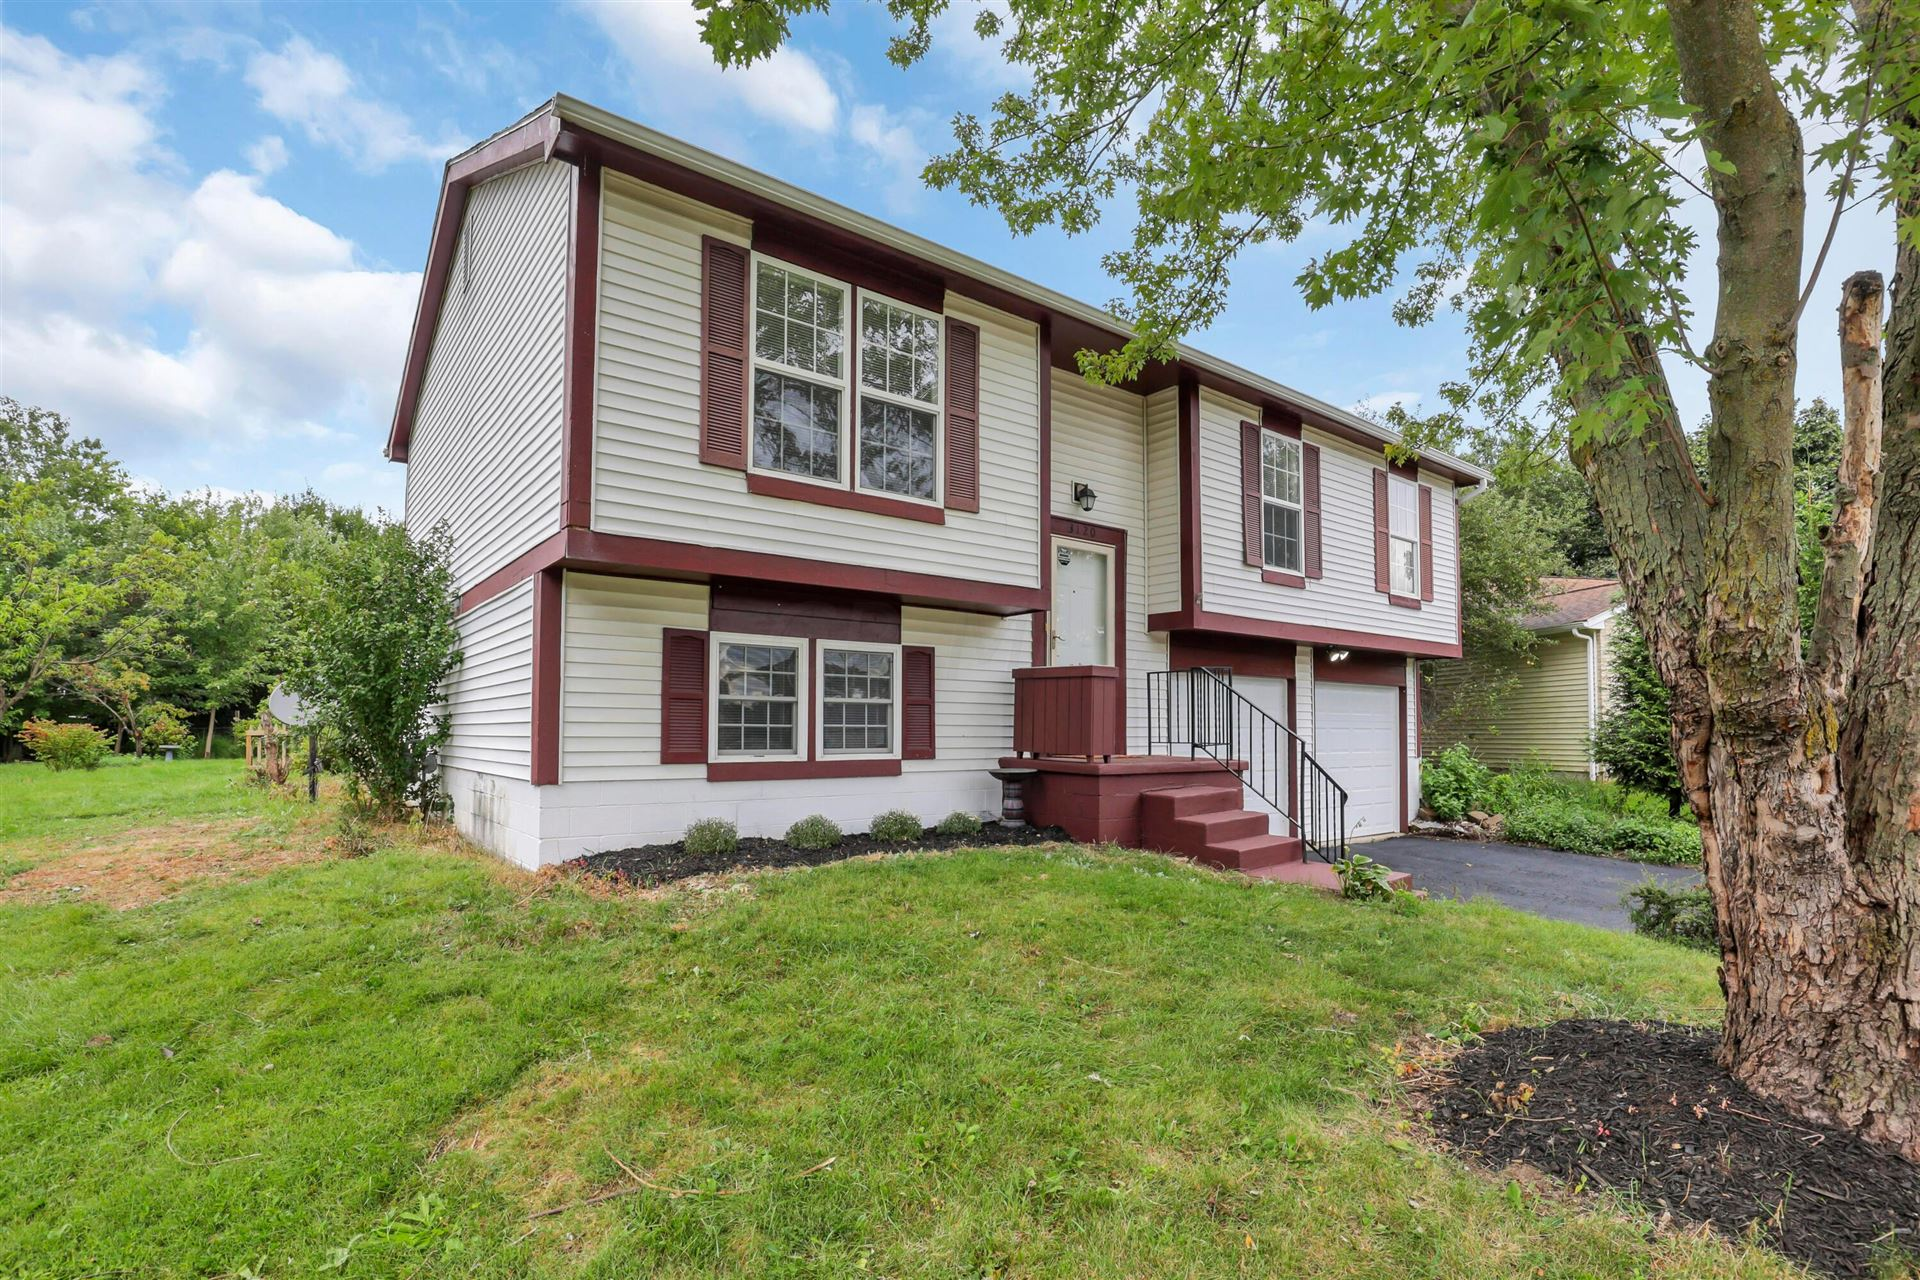 Photo of 3120 Larbrook Court, Dublin, OH 43017 (MLS # 221036640)